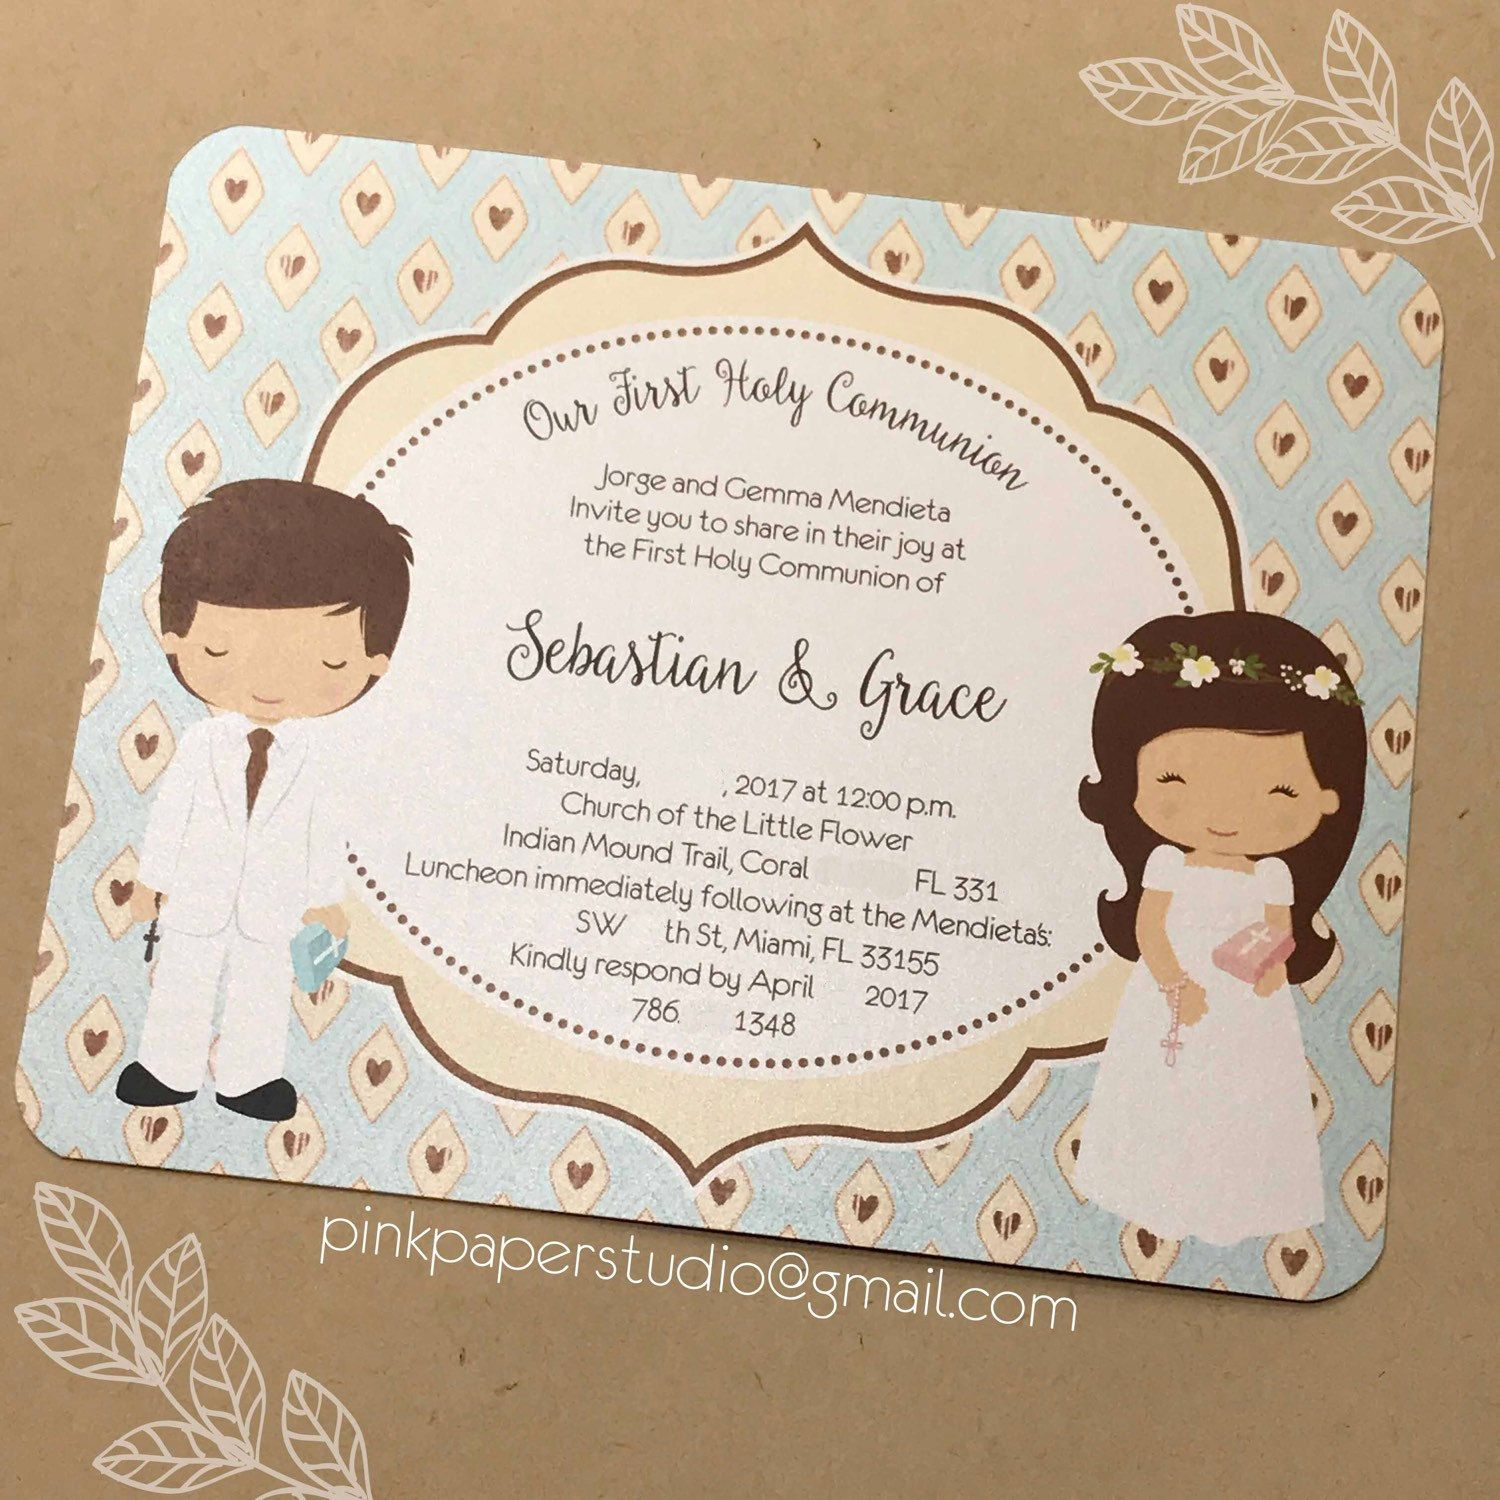 First Holy munion Invitation for Siblings • Invitation es with